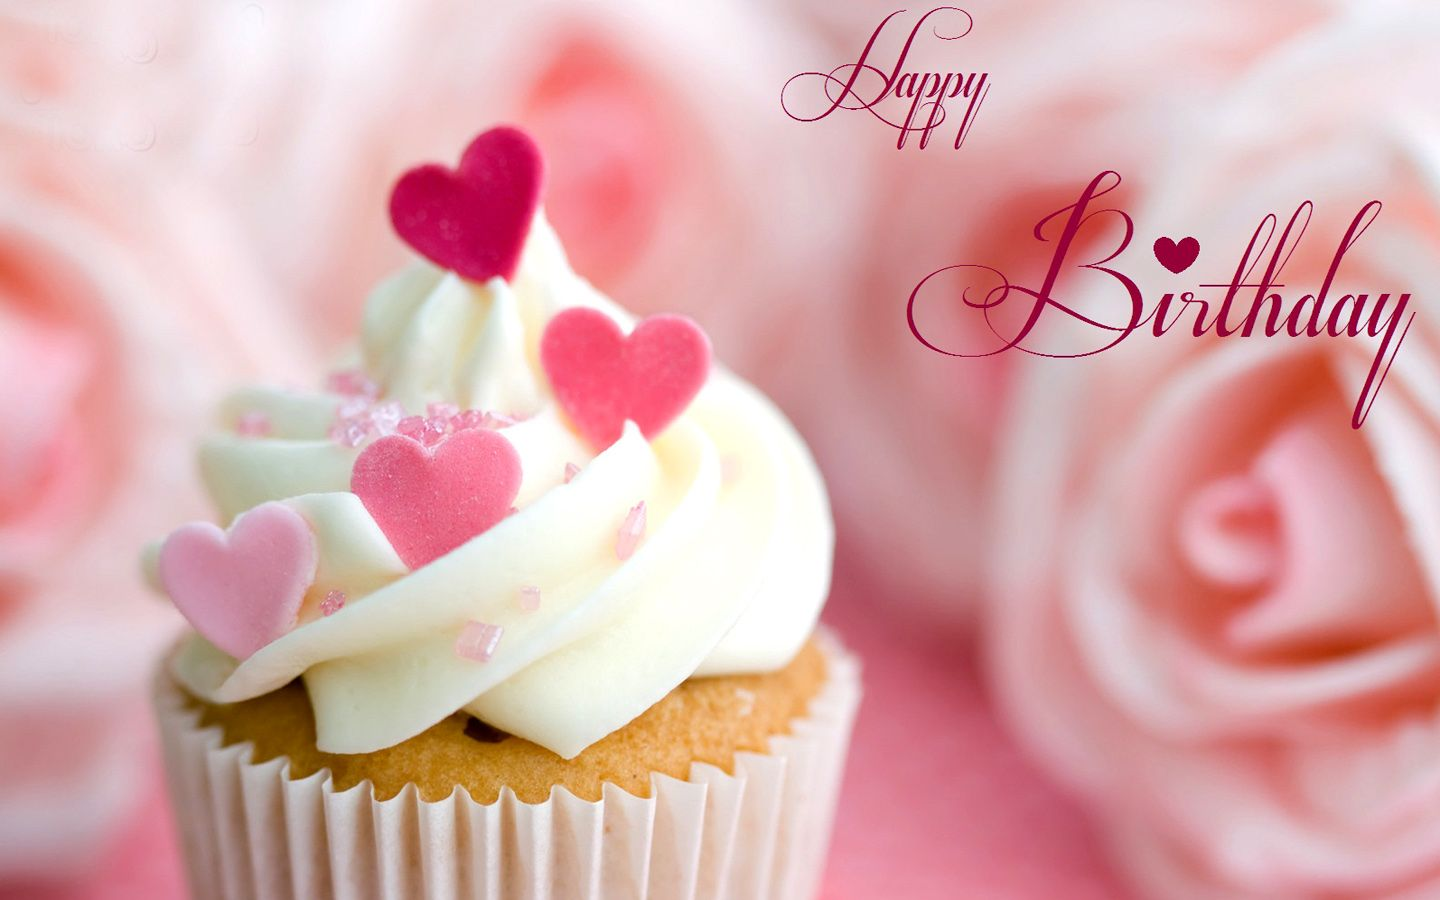 Happy Birthday wishes quotes wallpapers for friend – Quotes About Greetings for Birthday